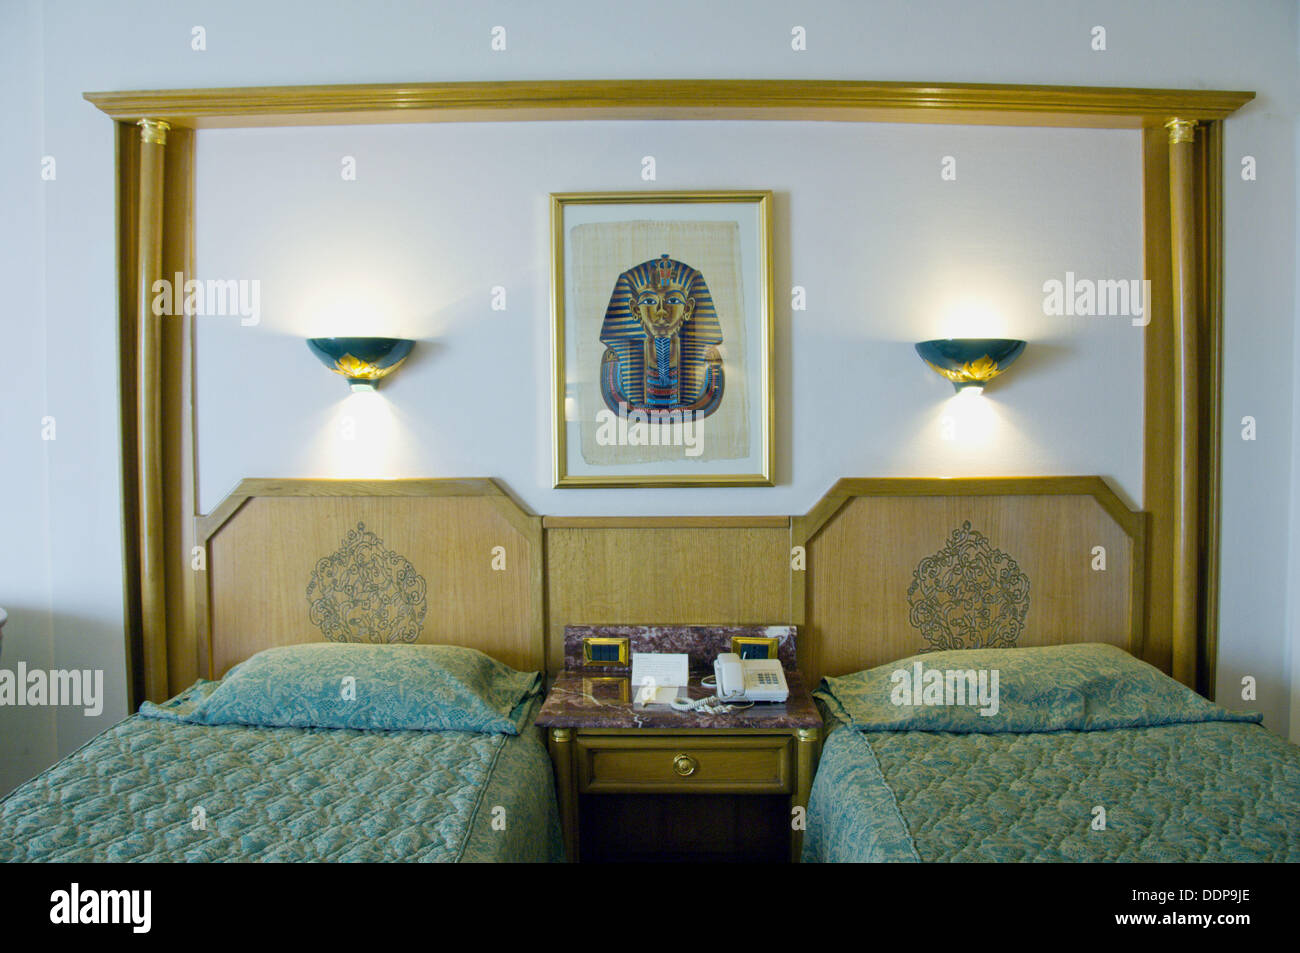 Twin Bedded Hotel Room With Egyptian Decor At The Hotel Sonesta St Stock Photo Alamy